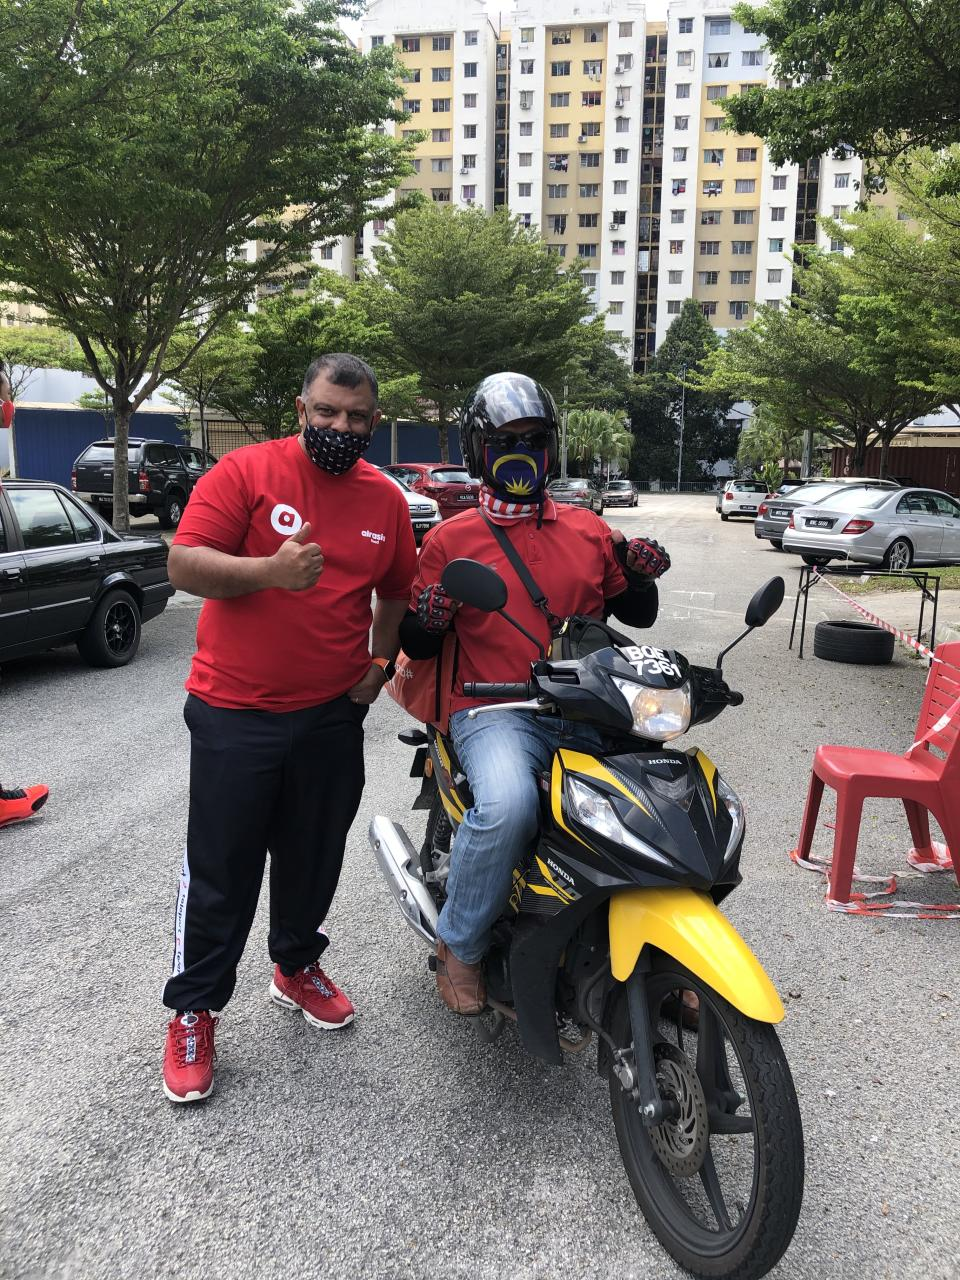 Tony Fernandes, CEO AirAsia Group, poses with a rider. (PHOTO: AirAsia)